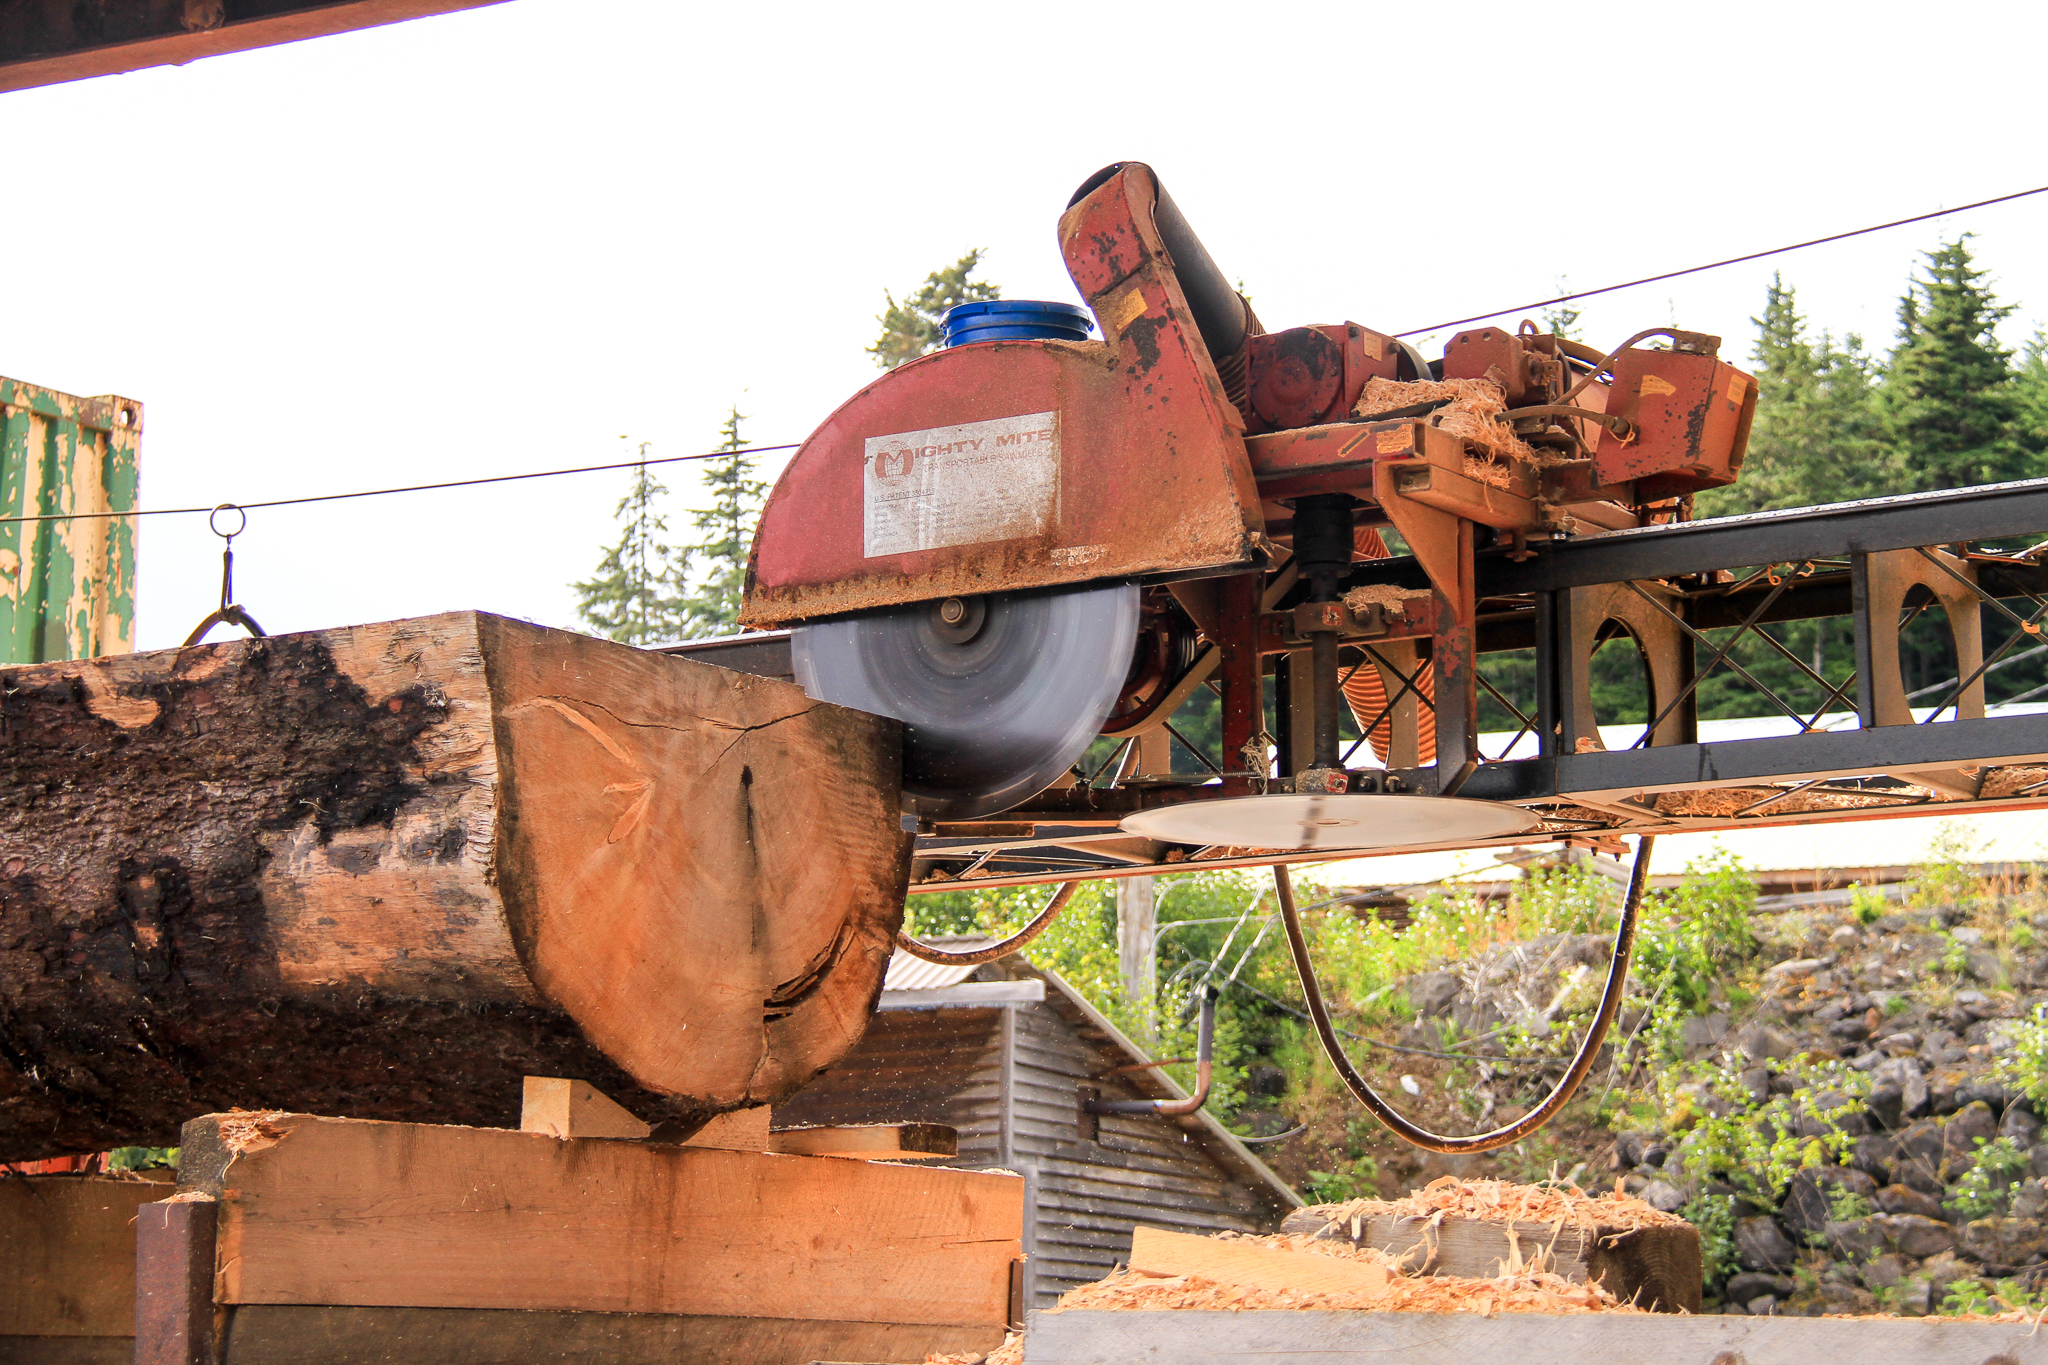 An old growth Sitka spruce log is processed at Icy Straits Lumber in Hoonah, Alaska, on Chichagof Island. The tree was cut for carving a tribal canoe, but contained rot, so the mill is cutting it for other products.